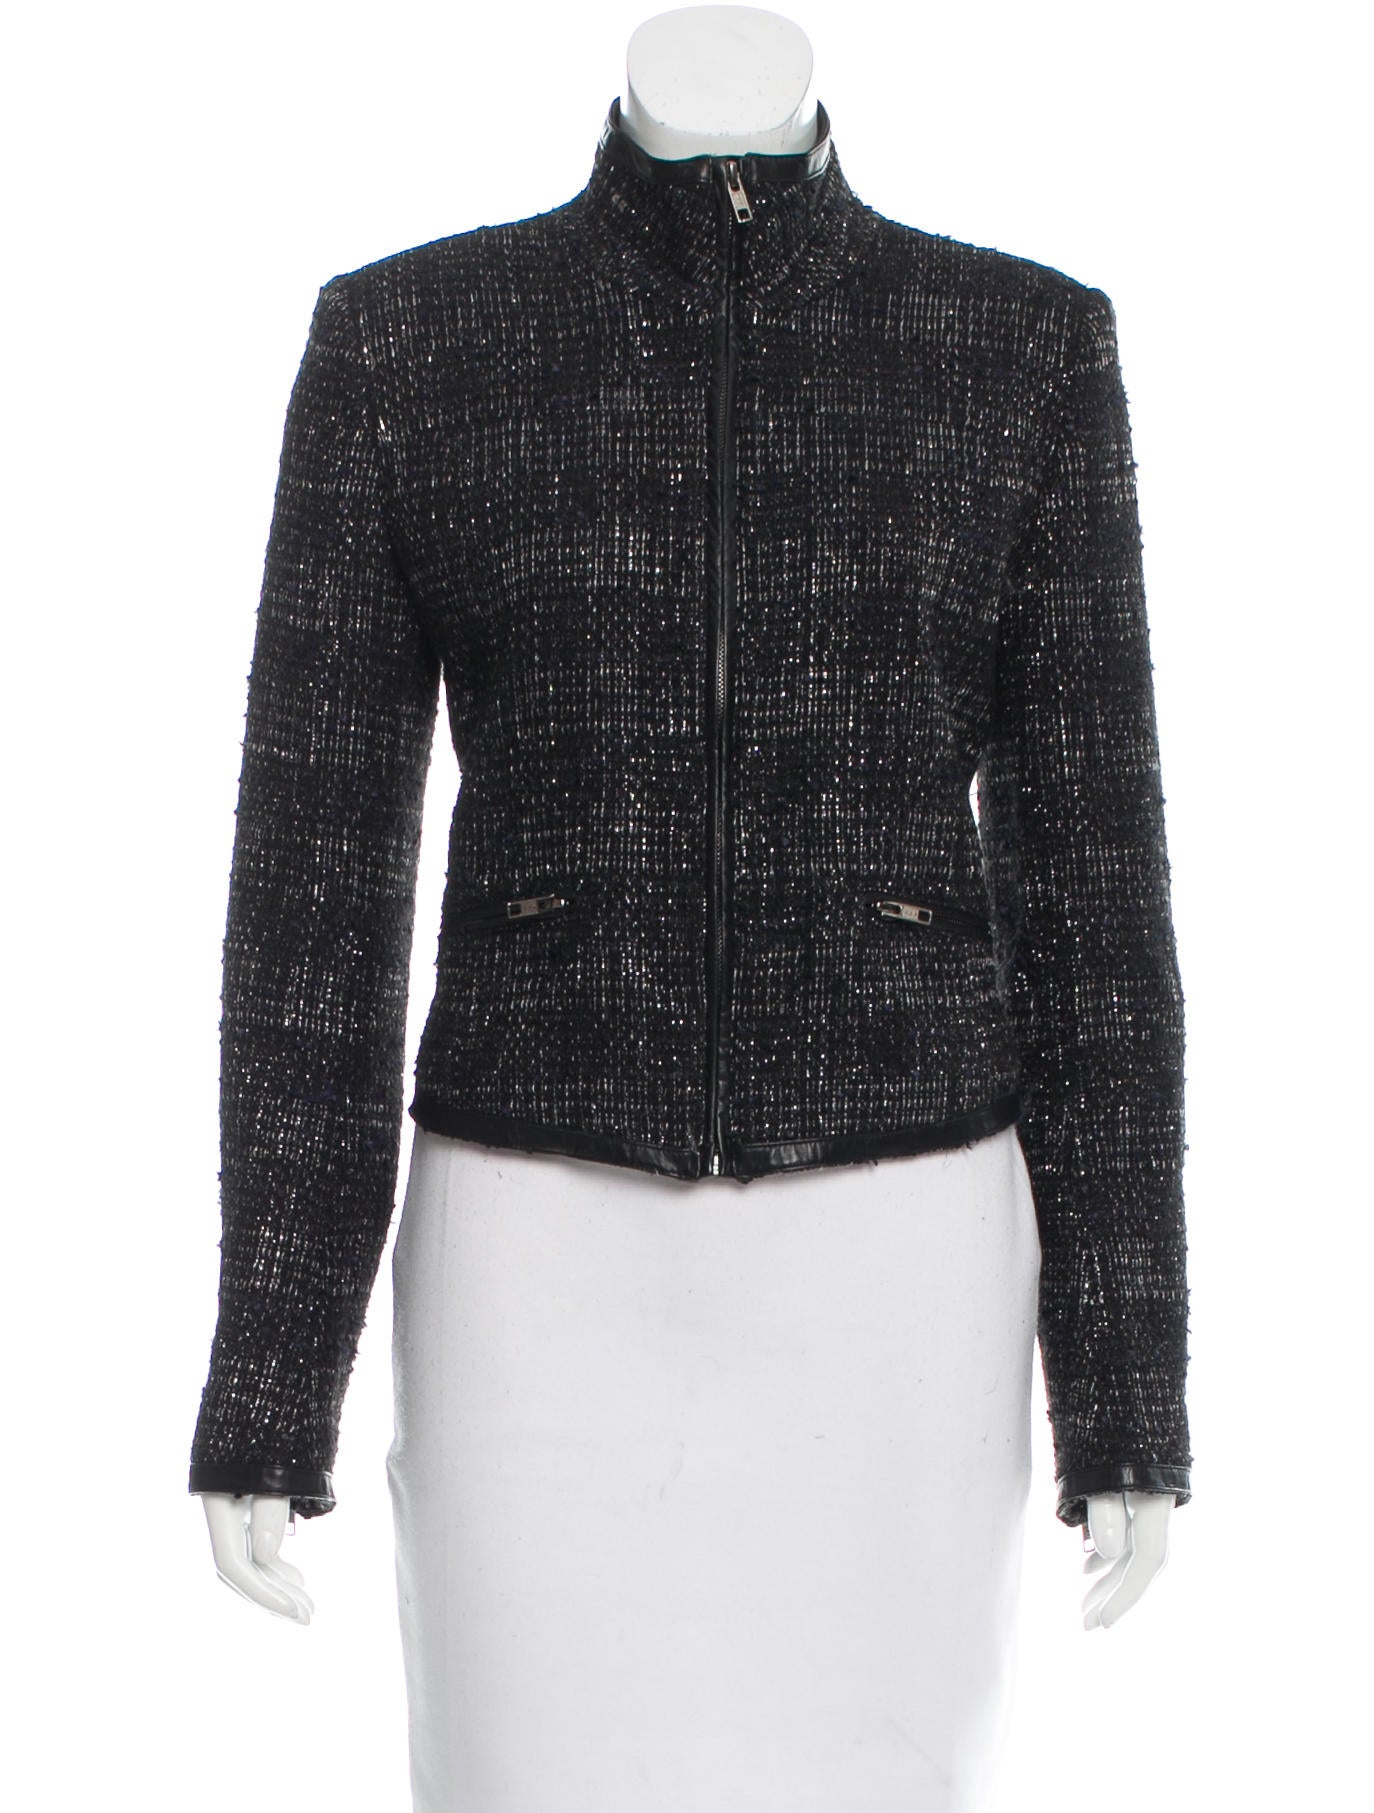 Find great deals on eBay for tweed and leather jacket. Shop with confidence.